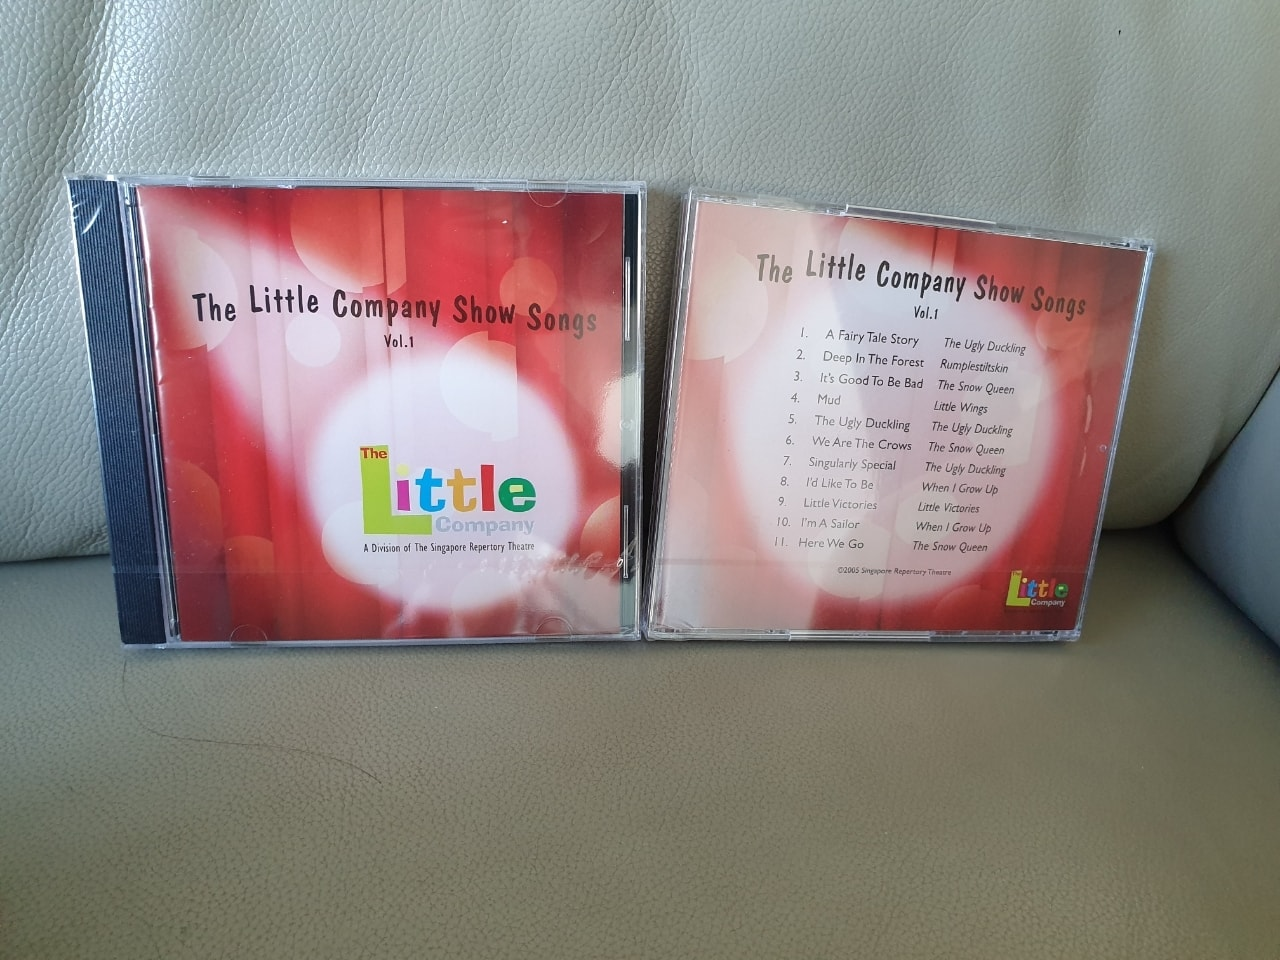 The Little Company Show Songs Vol.1